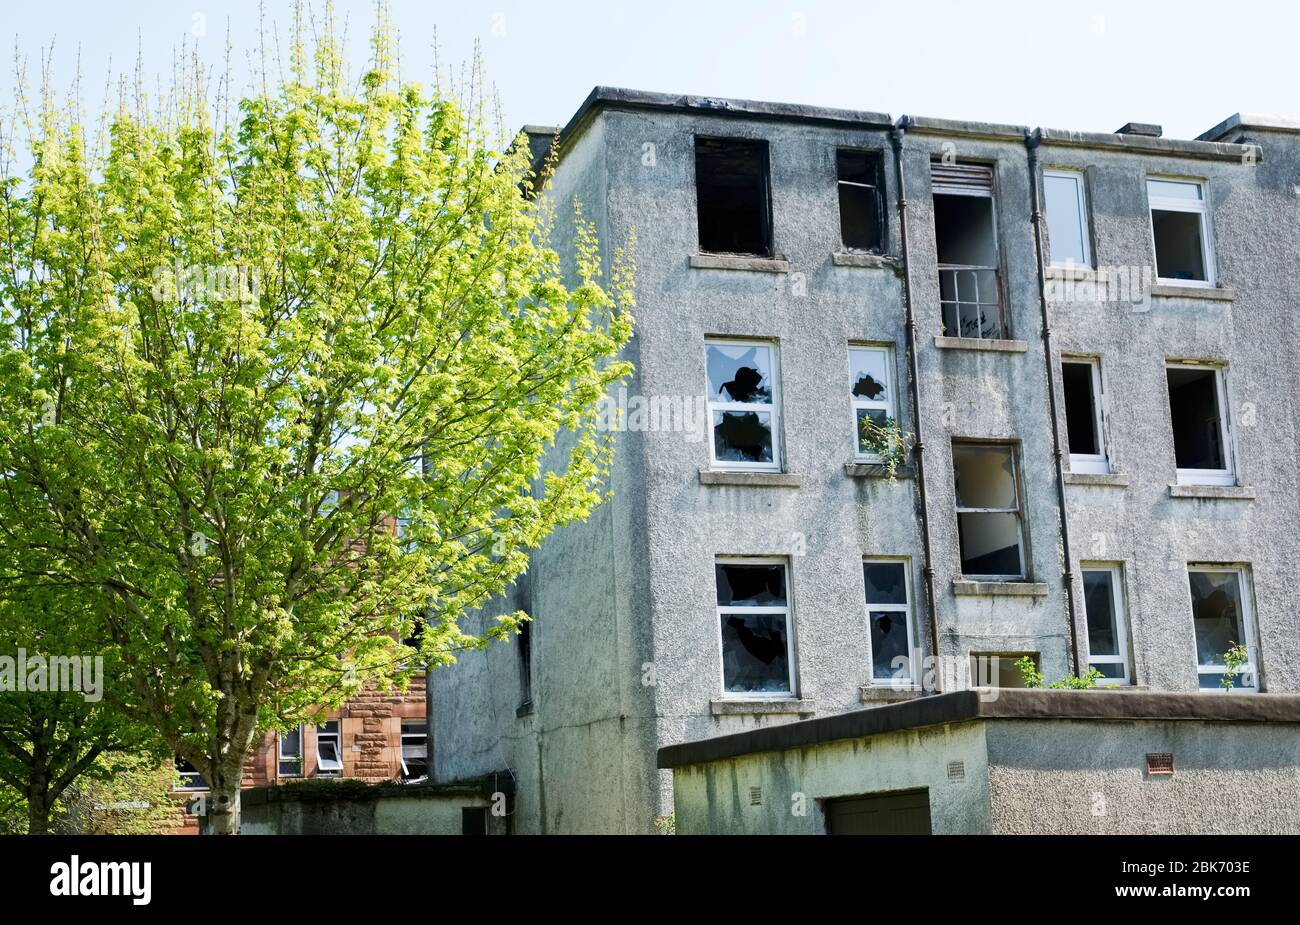 Derelict abandoned council house in poor housing crisis ghetto estate slum in North England Stock Photo